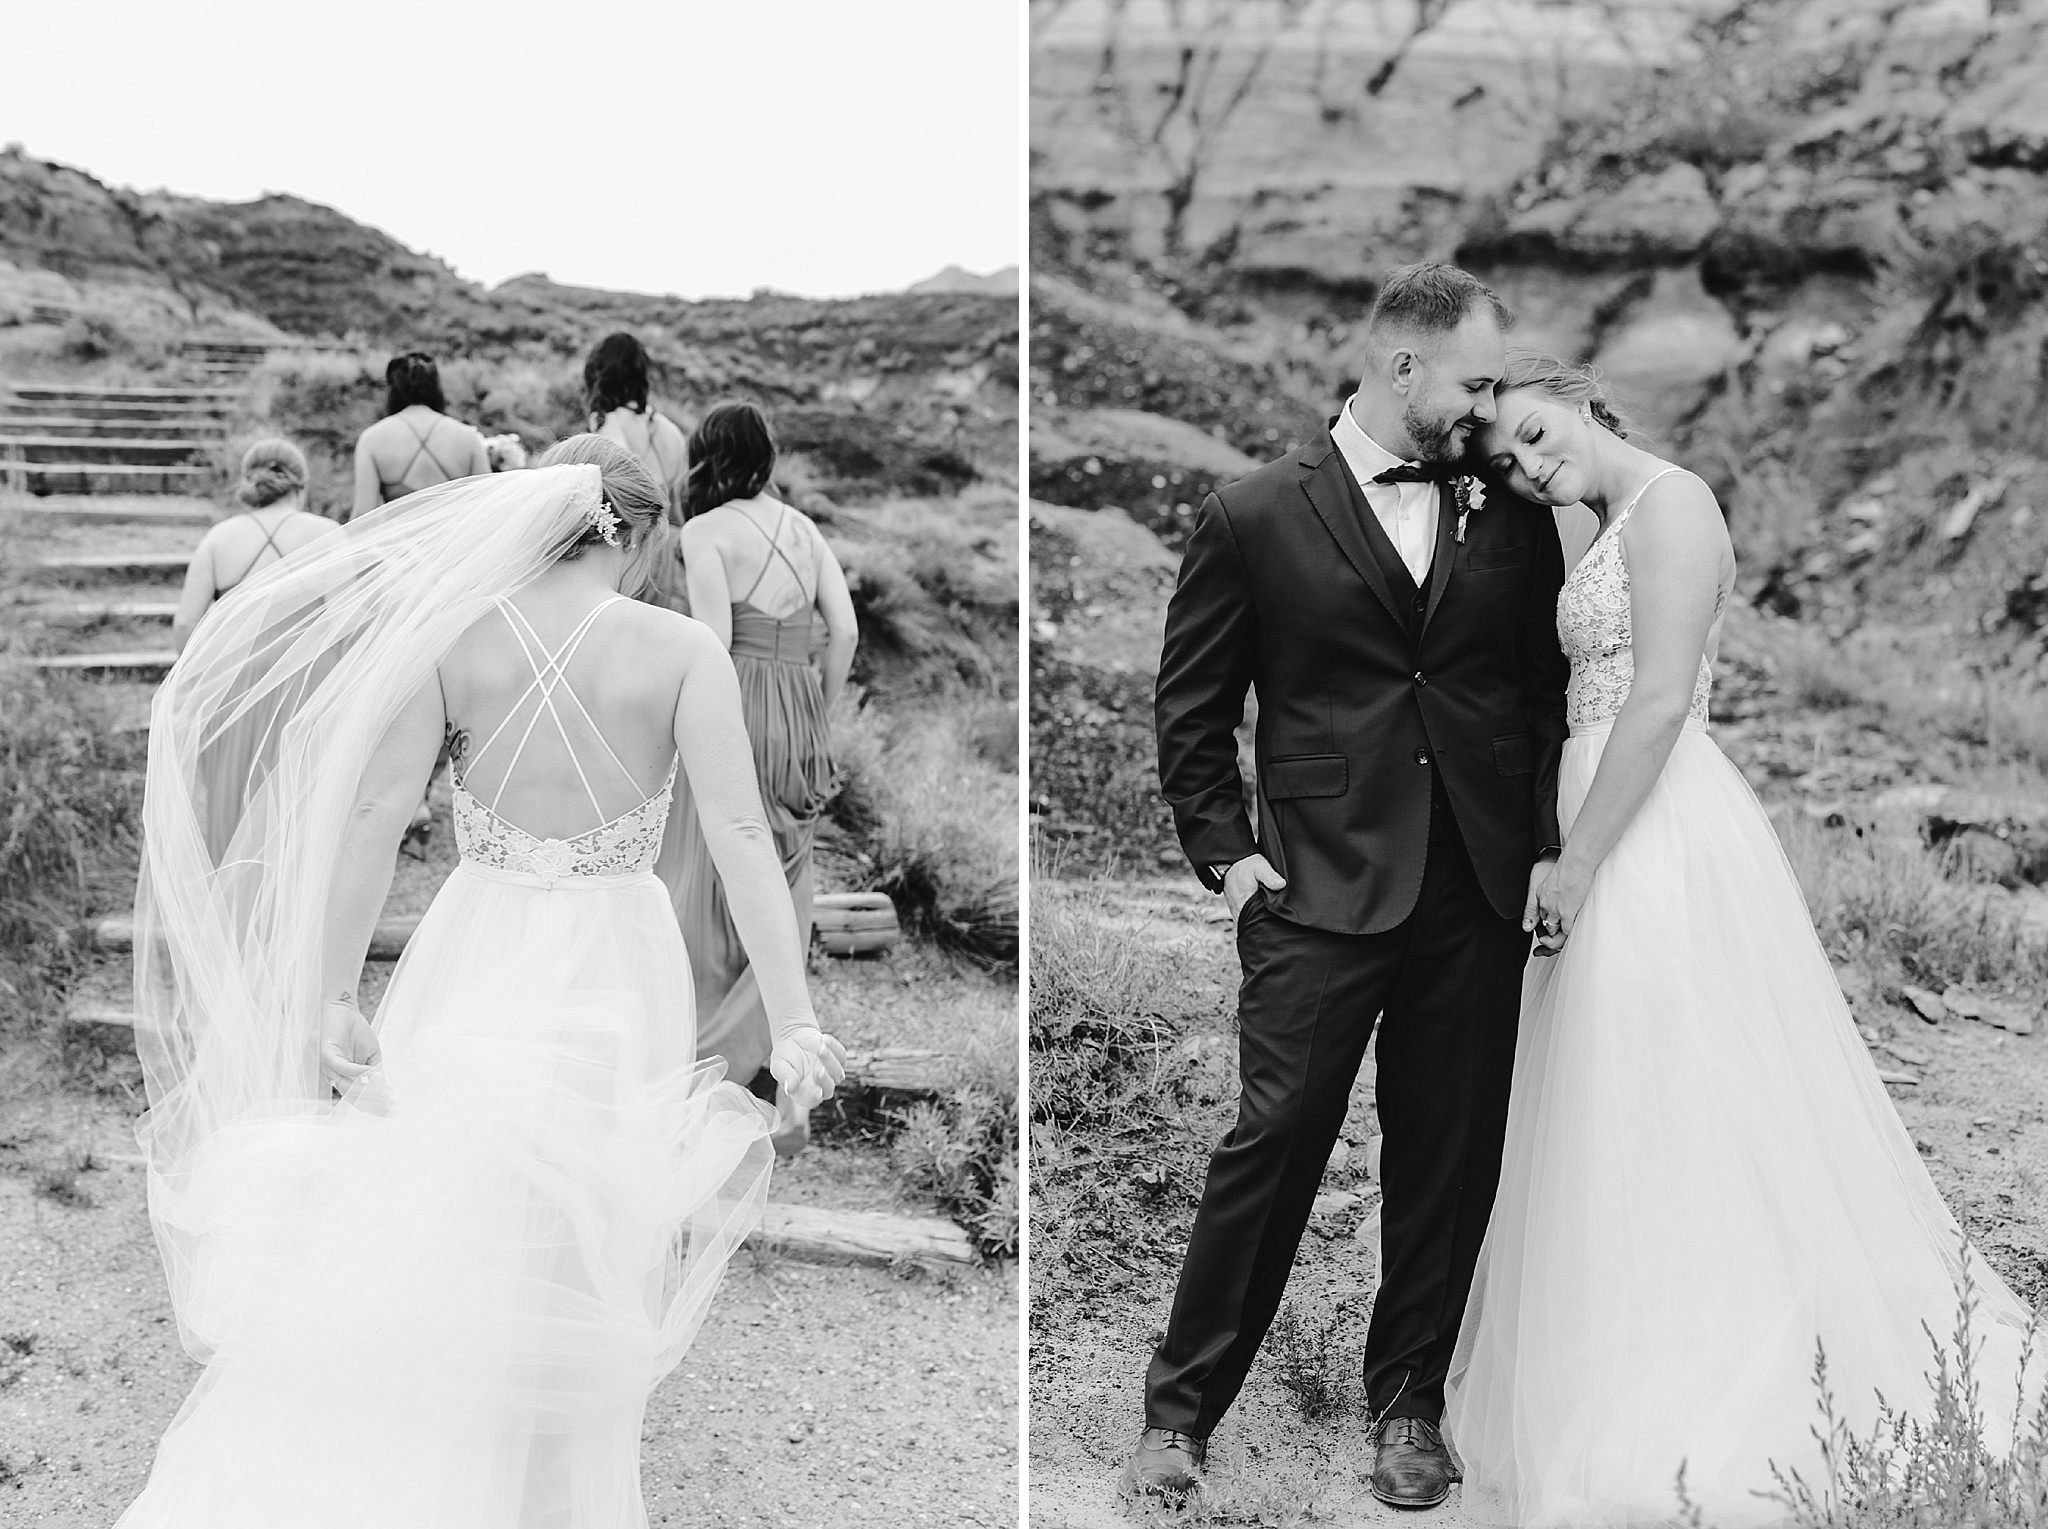 drumheller wedding117.JPG